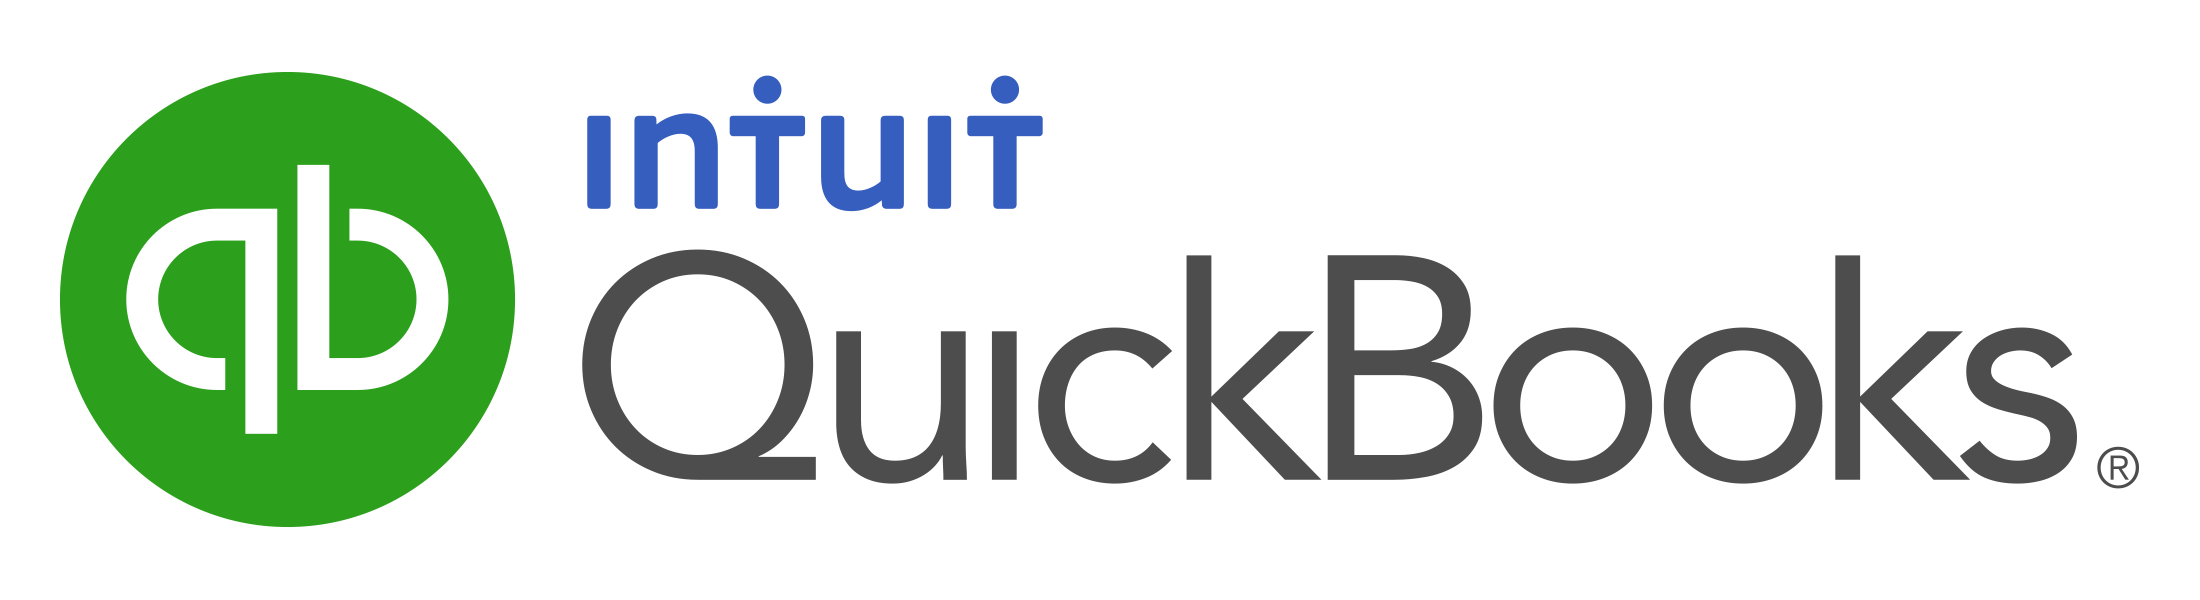 Quickbooks Help & Support